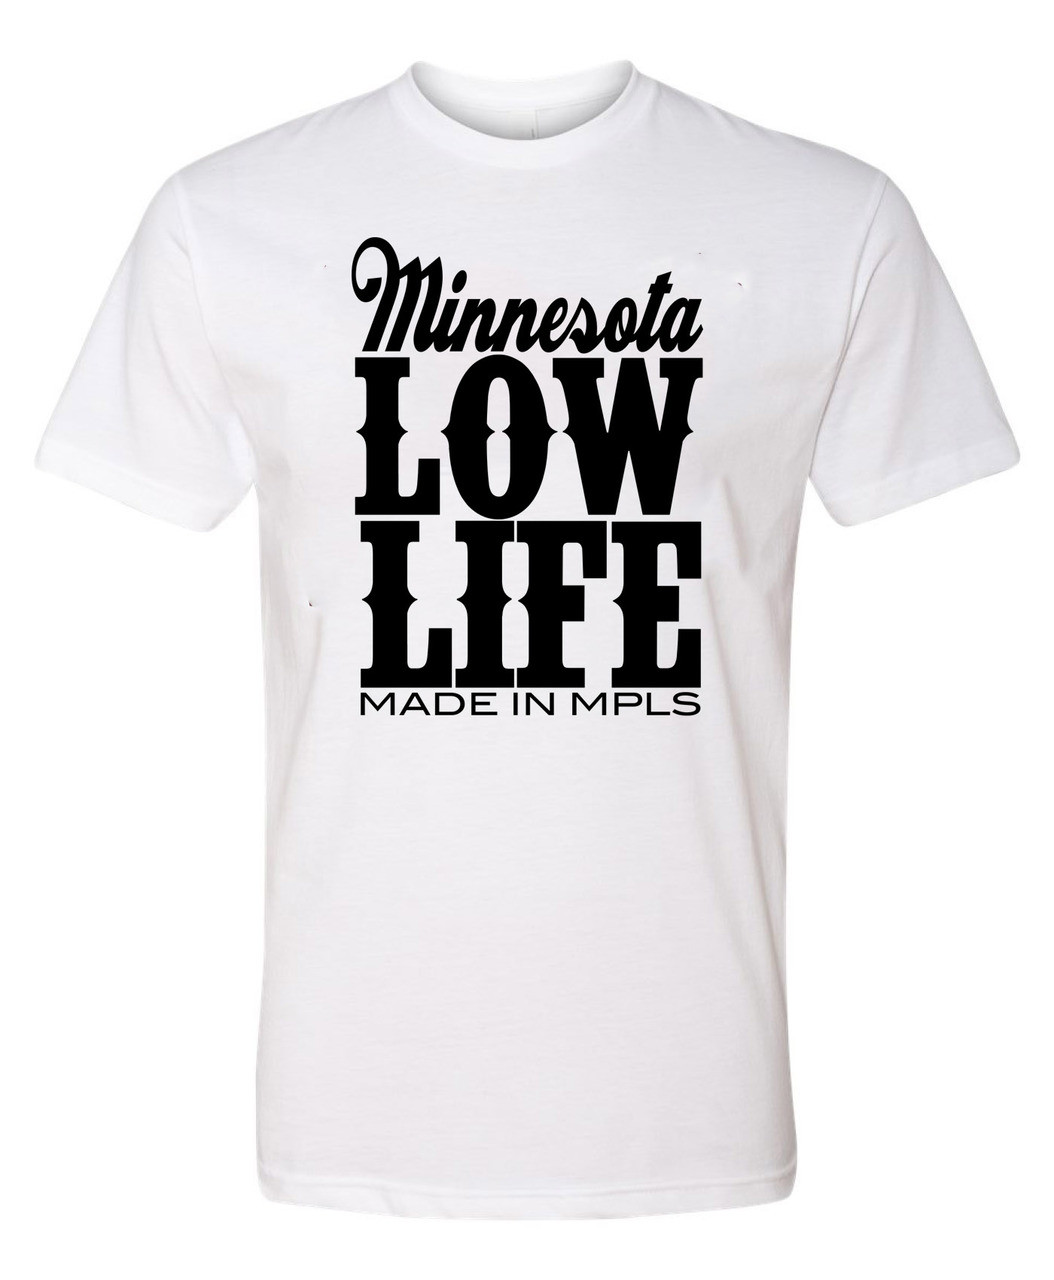 Made in Mpls | Minnesota Low Life Apparel | Monkey in a Dryer